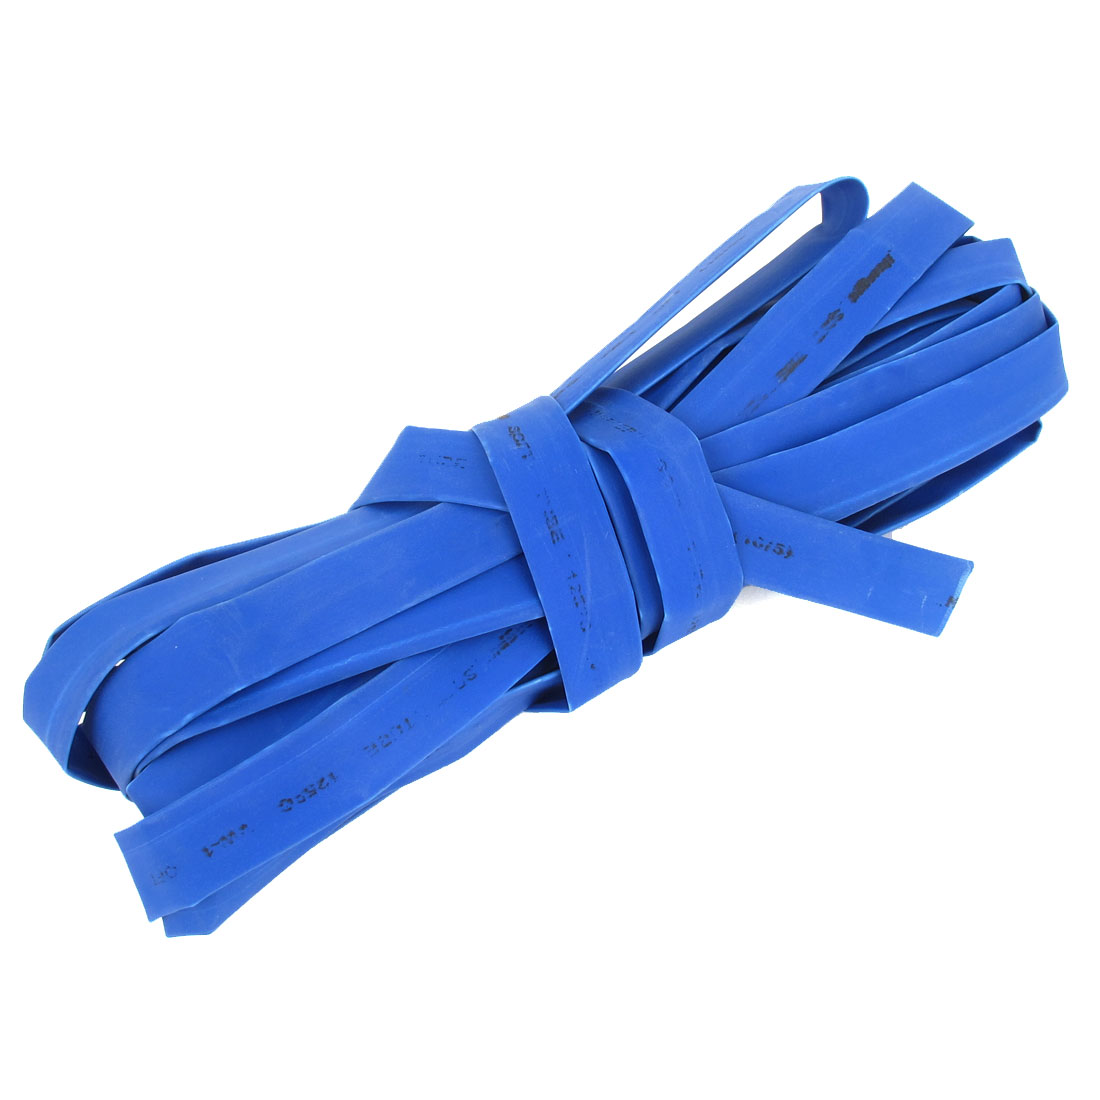 10mm Dia. Heat Shrinkable Tube Shrink Tubing 7.5m Length Blue